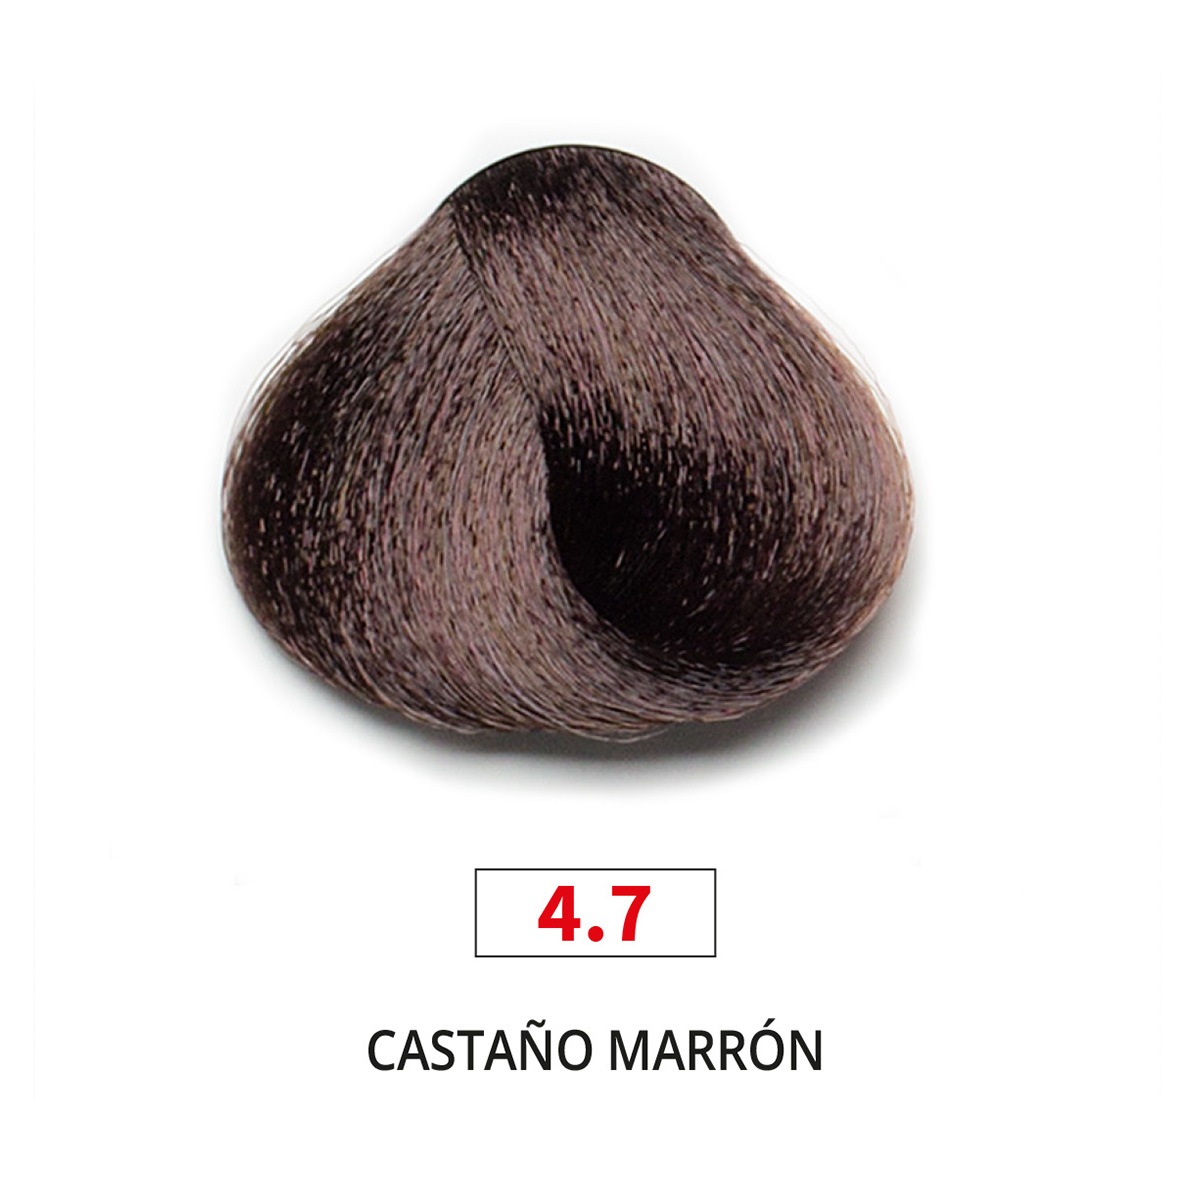 Marron 4.7 - Yanguas Professional